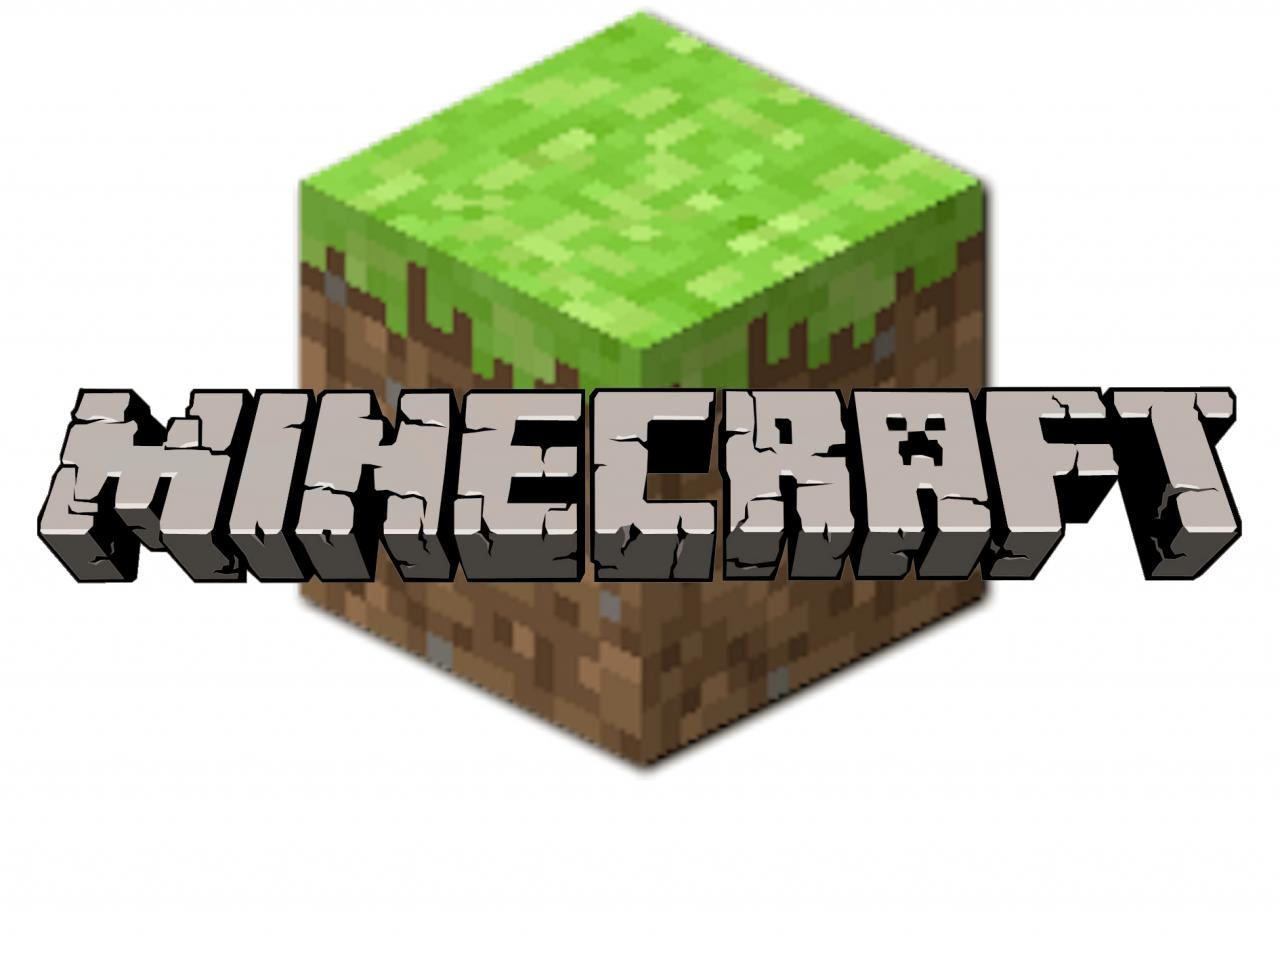 Minecraft grass block clipart banner library download Minecraft logo clipart - ClipartFest banner library download